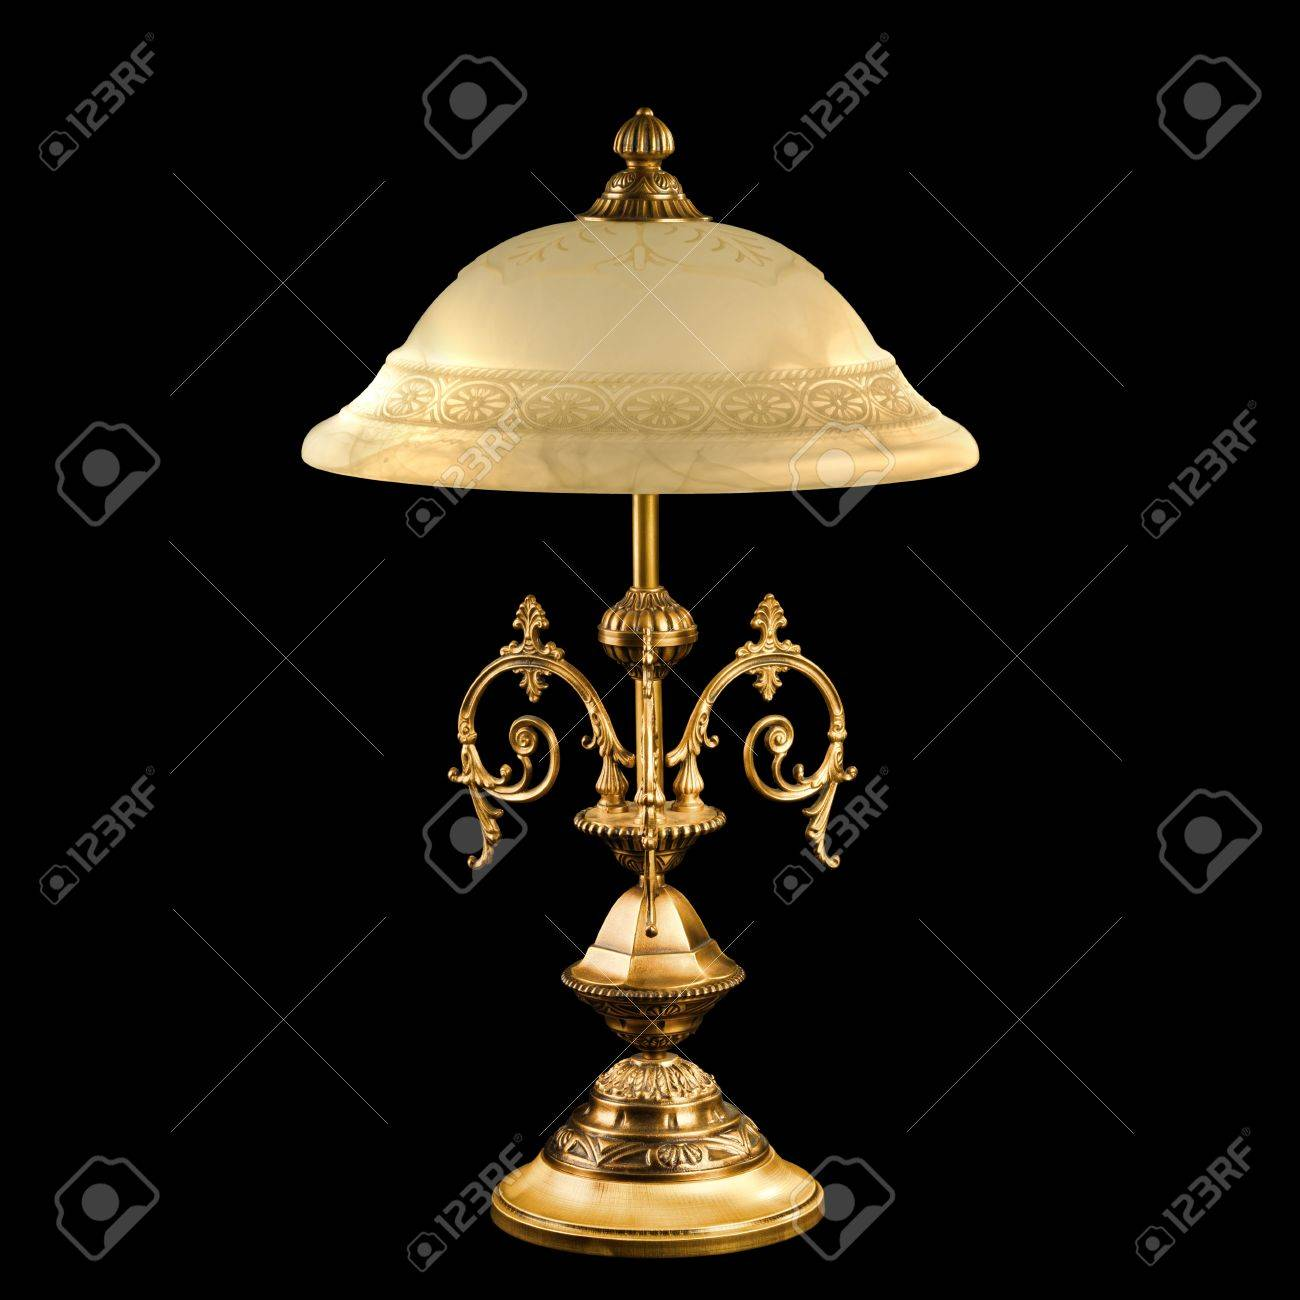 vintage table lamp isolated on black Stock Photo - 9822242